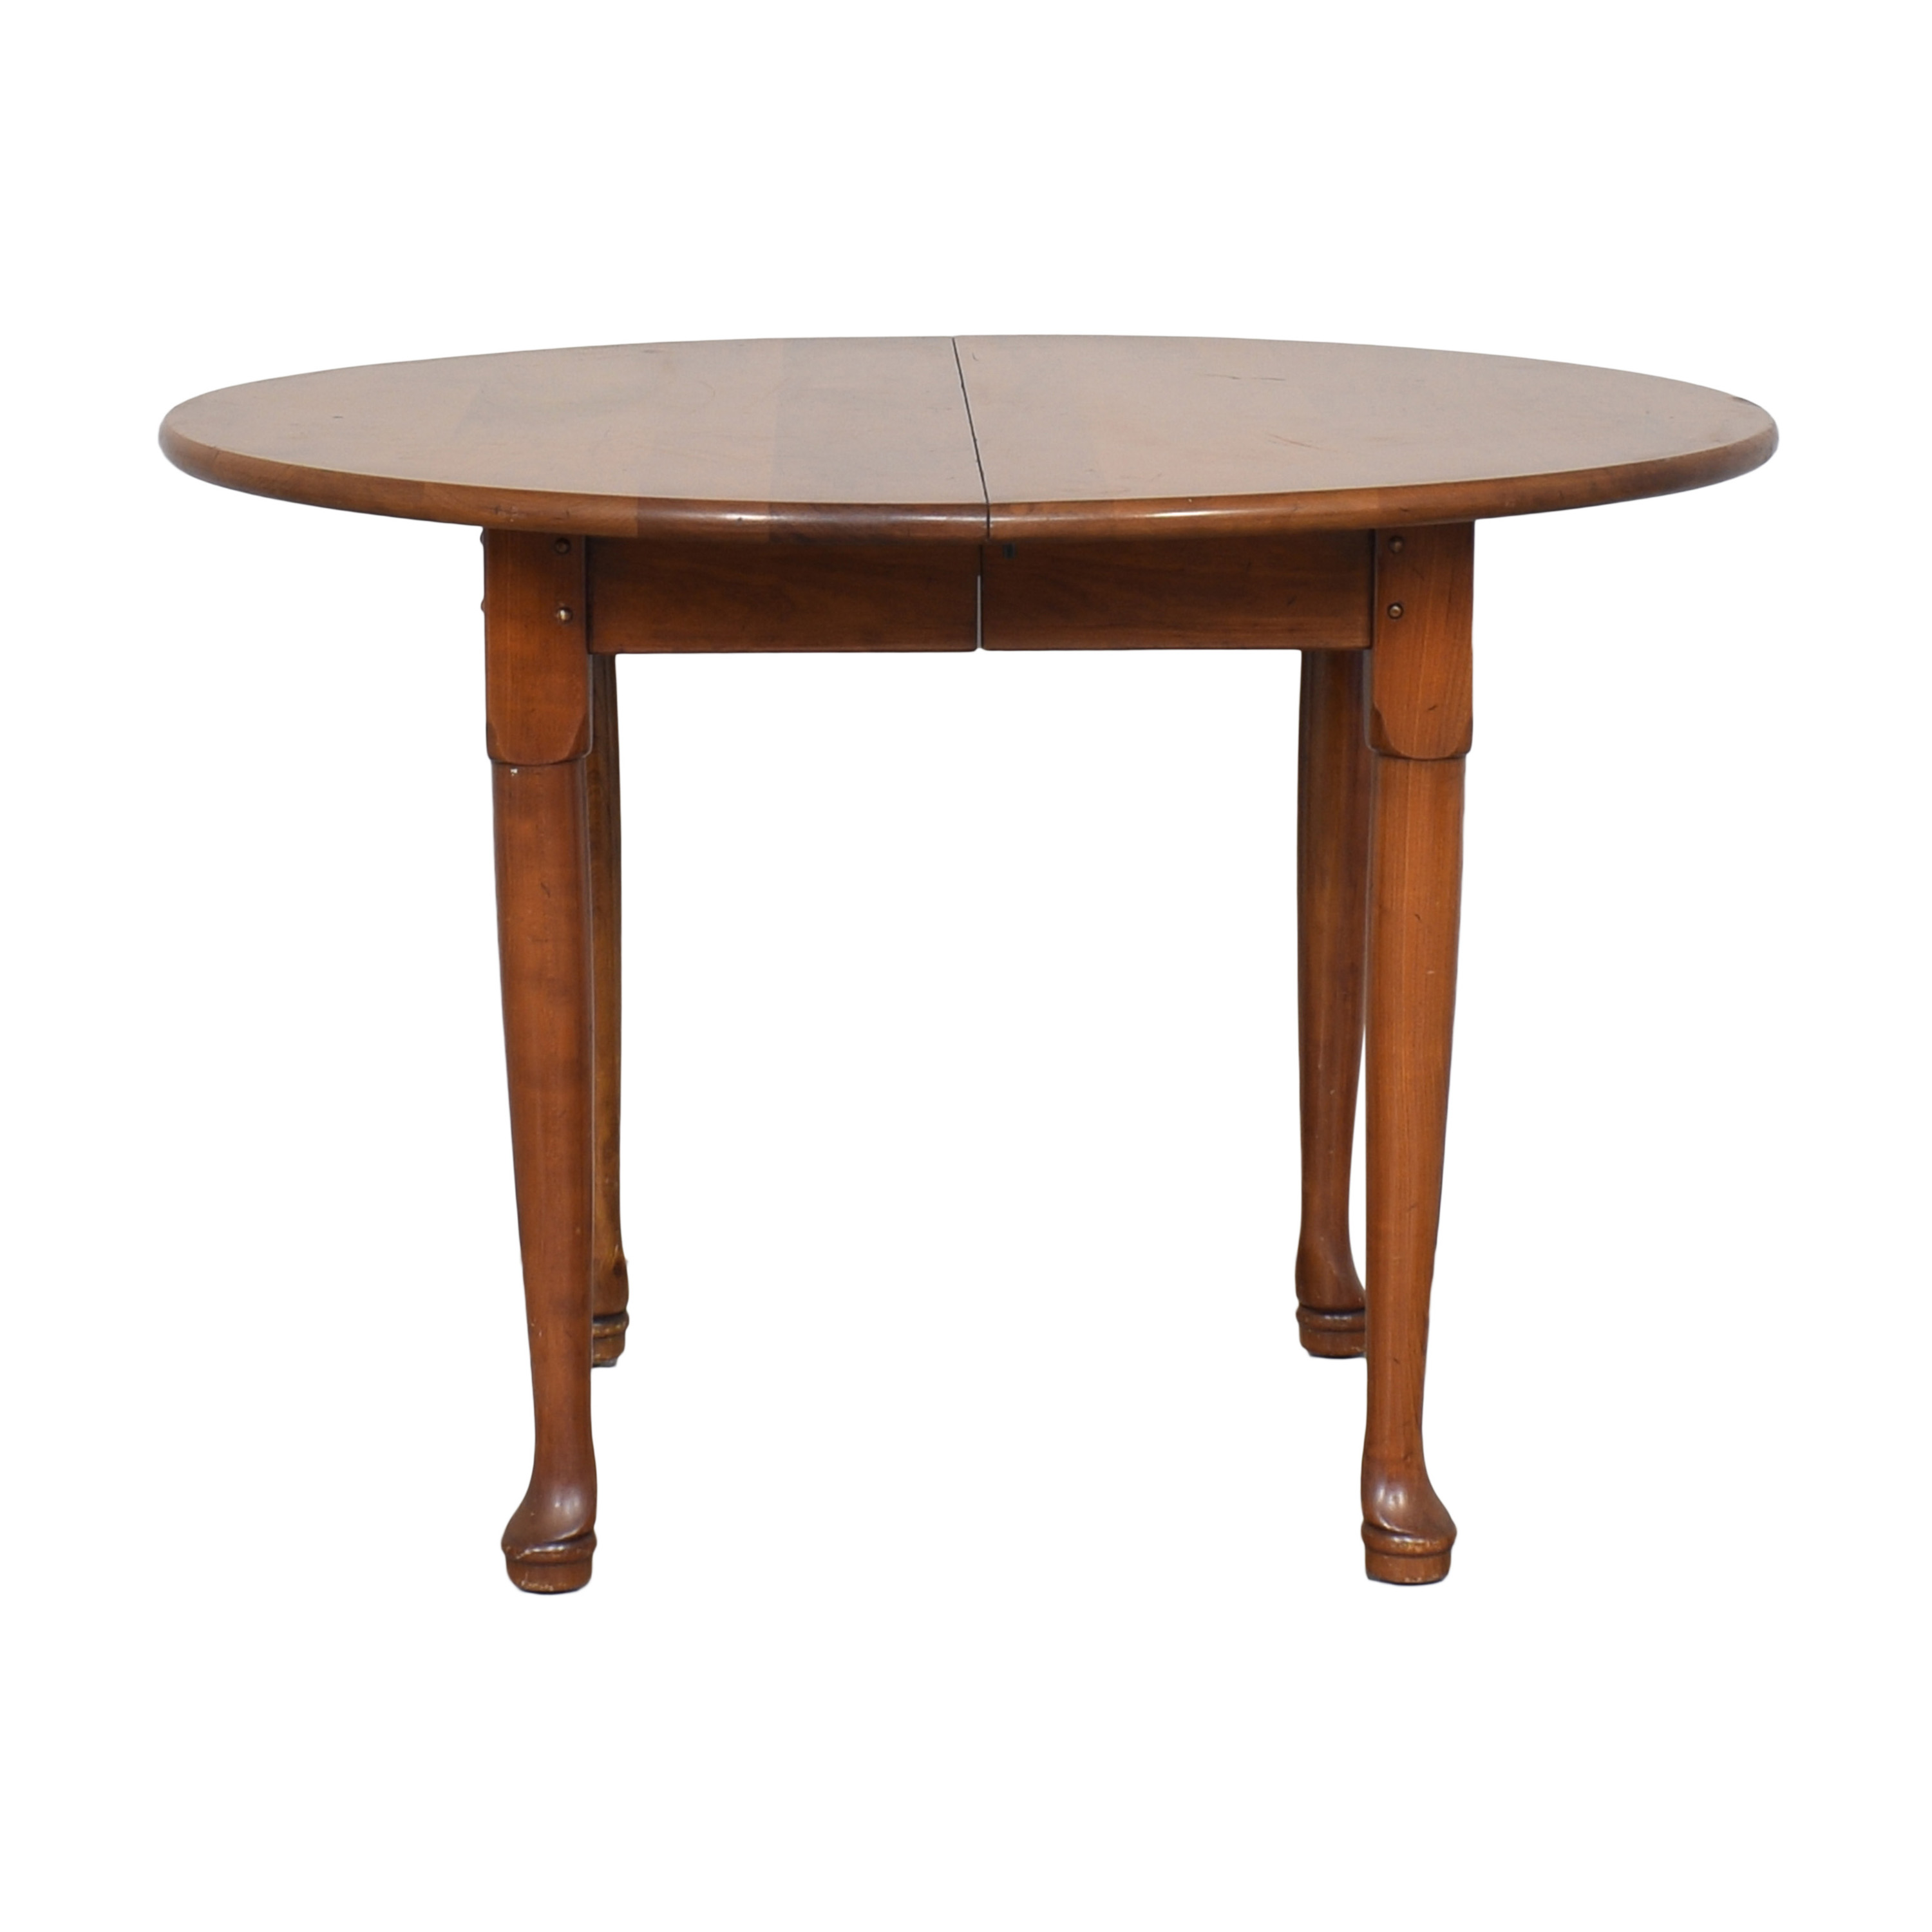 buy Stickley Furniture Stickley Furniture Extendable Dining Table online